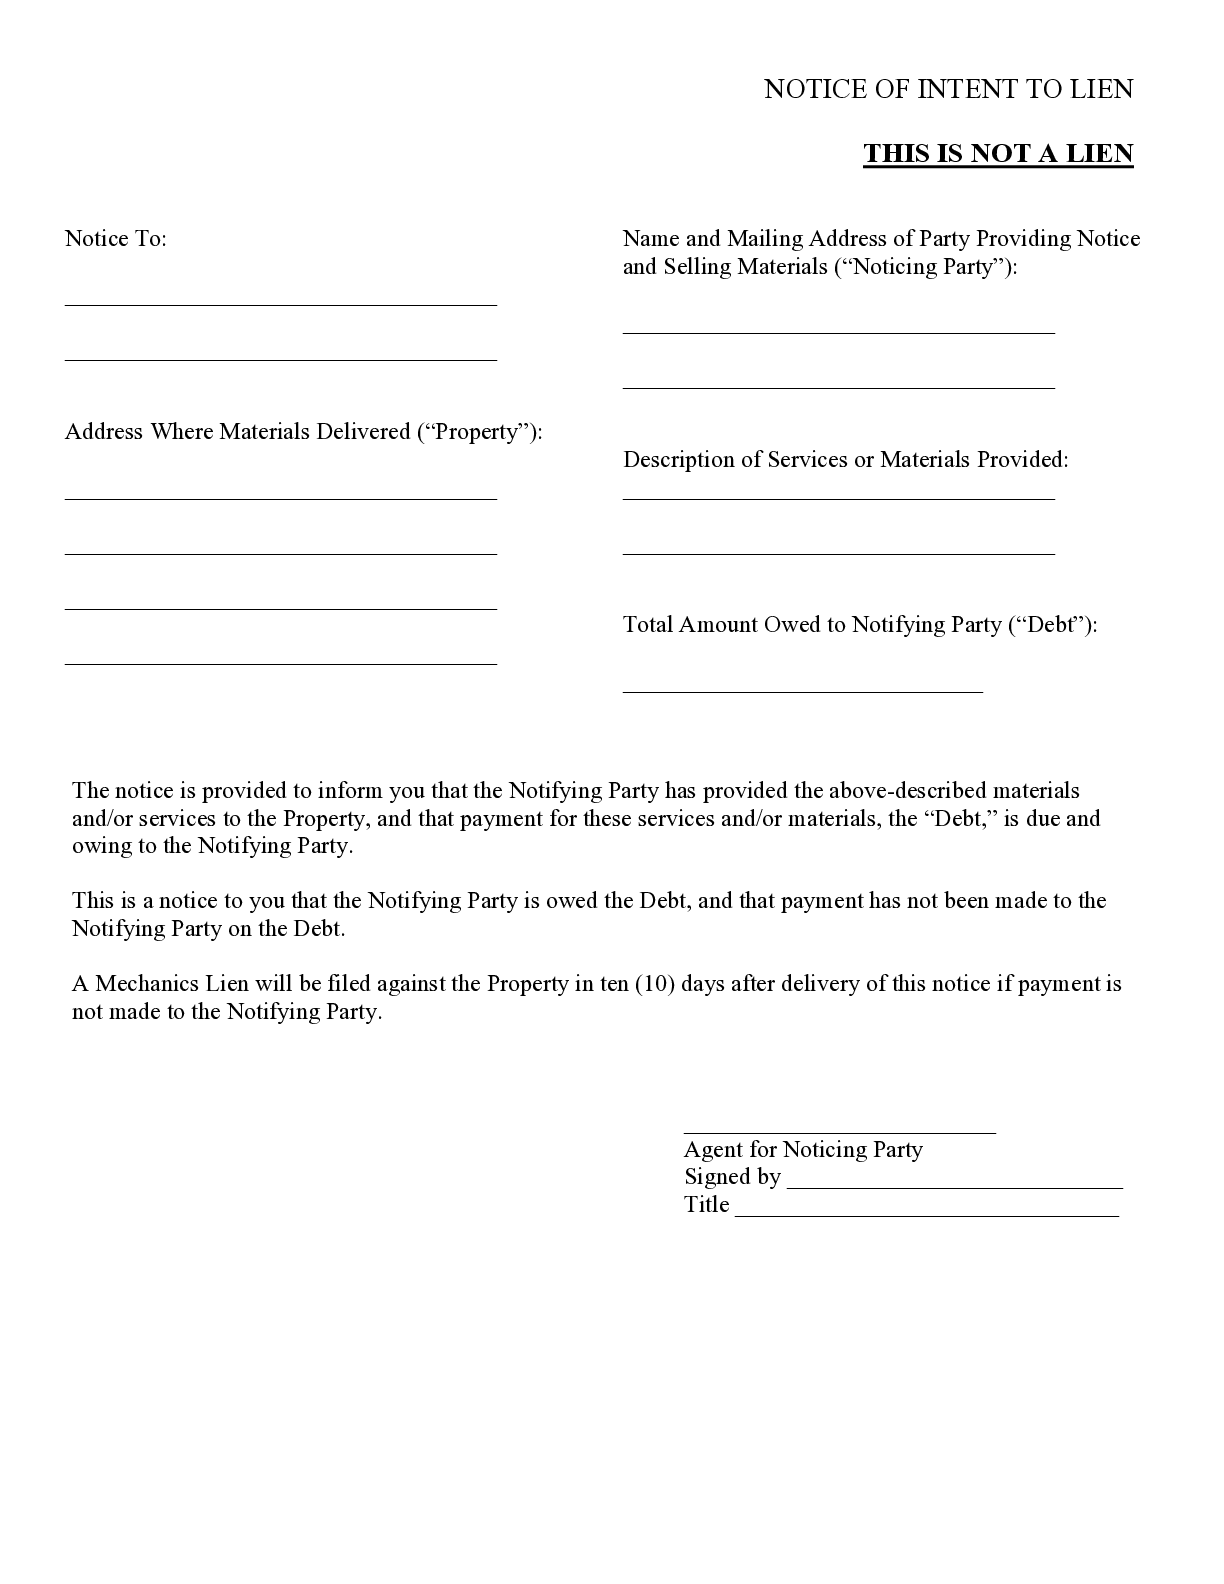 Notice Of Intent To Lien In Construction